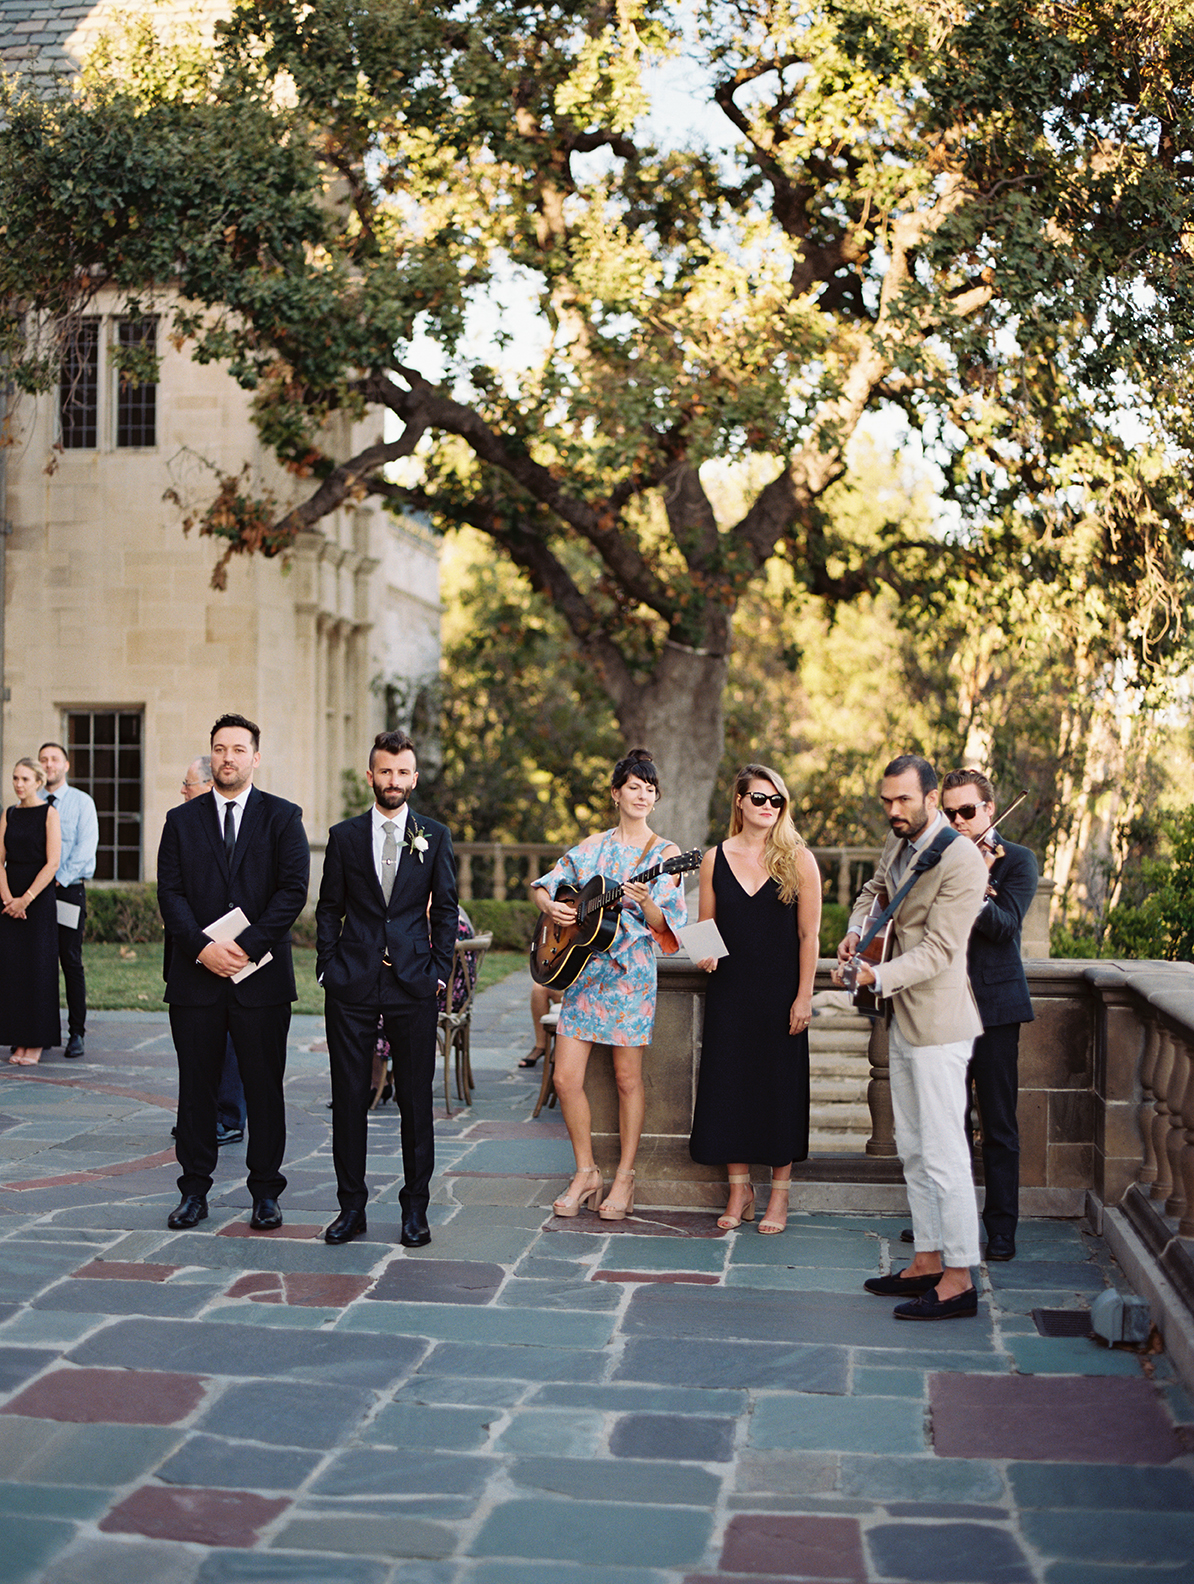 172-brian-sarra-los-angeles-wedding-brumley-wells-photography.jpg